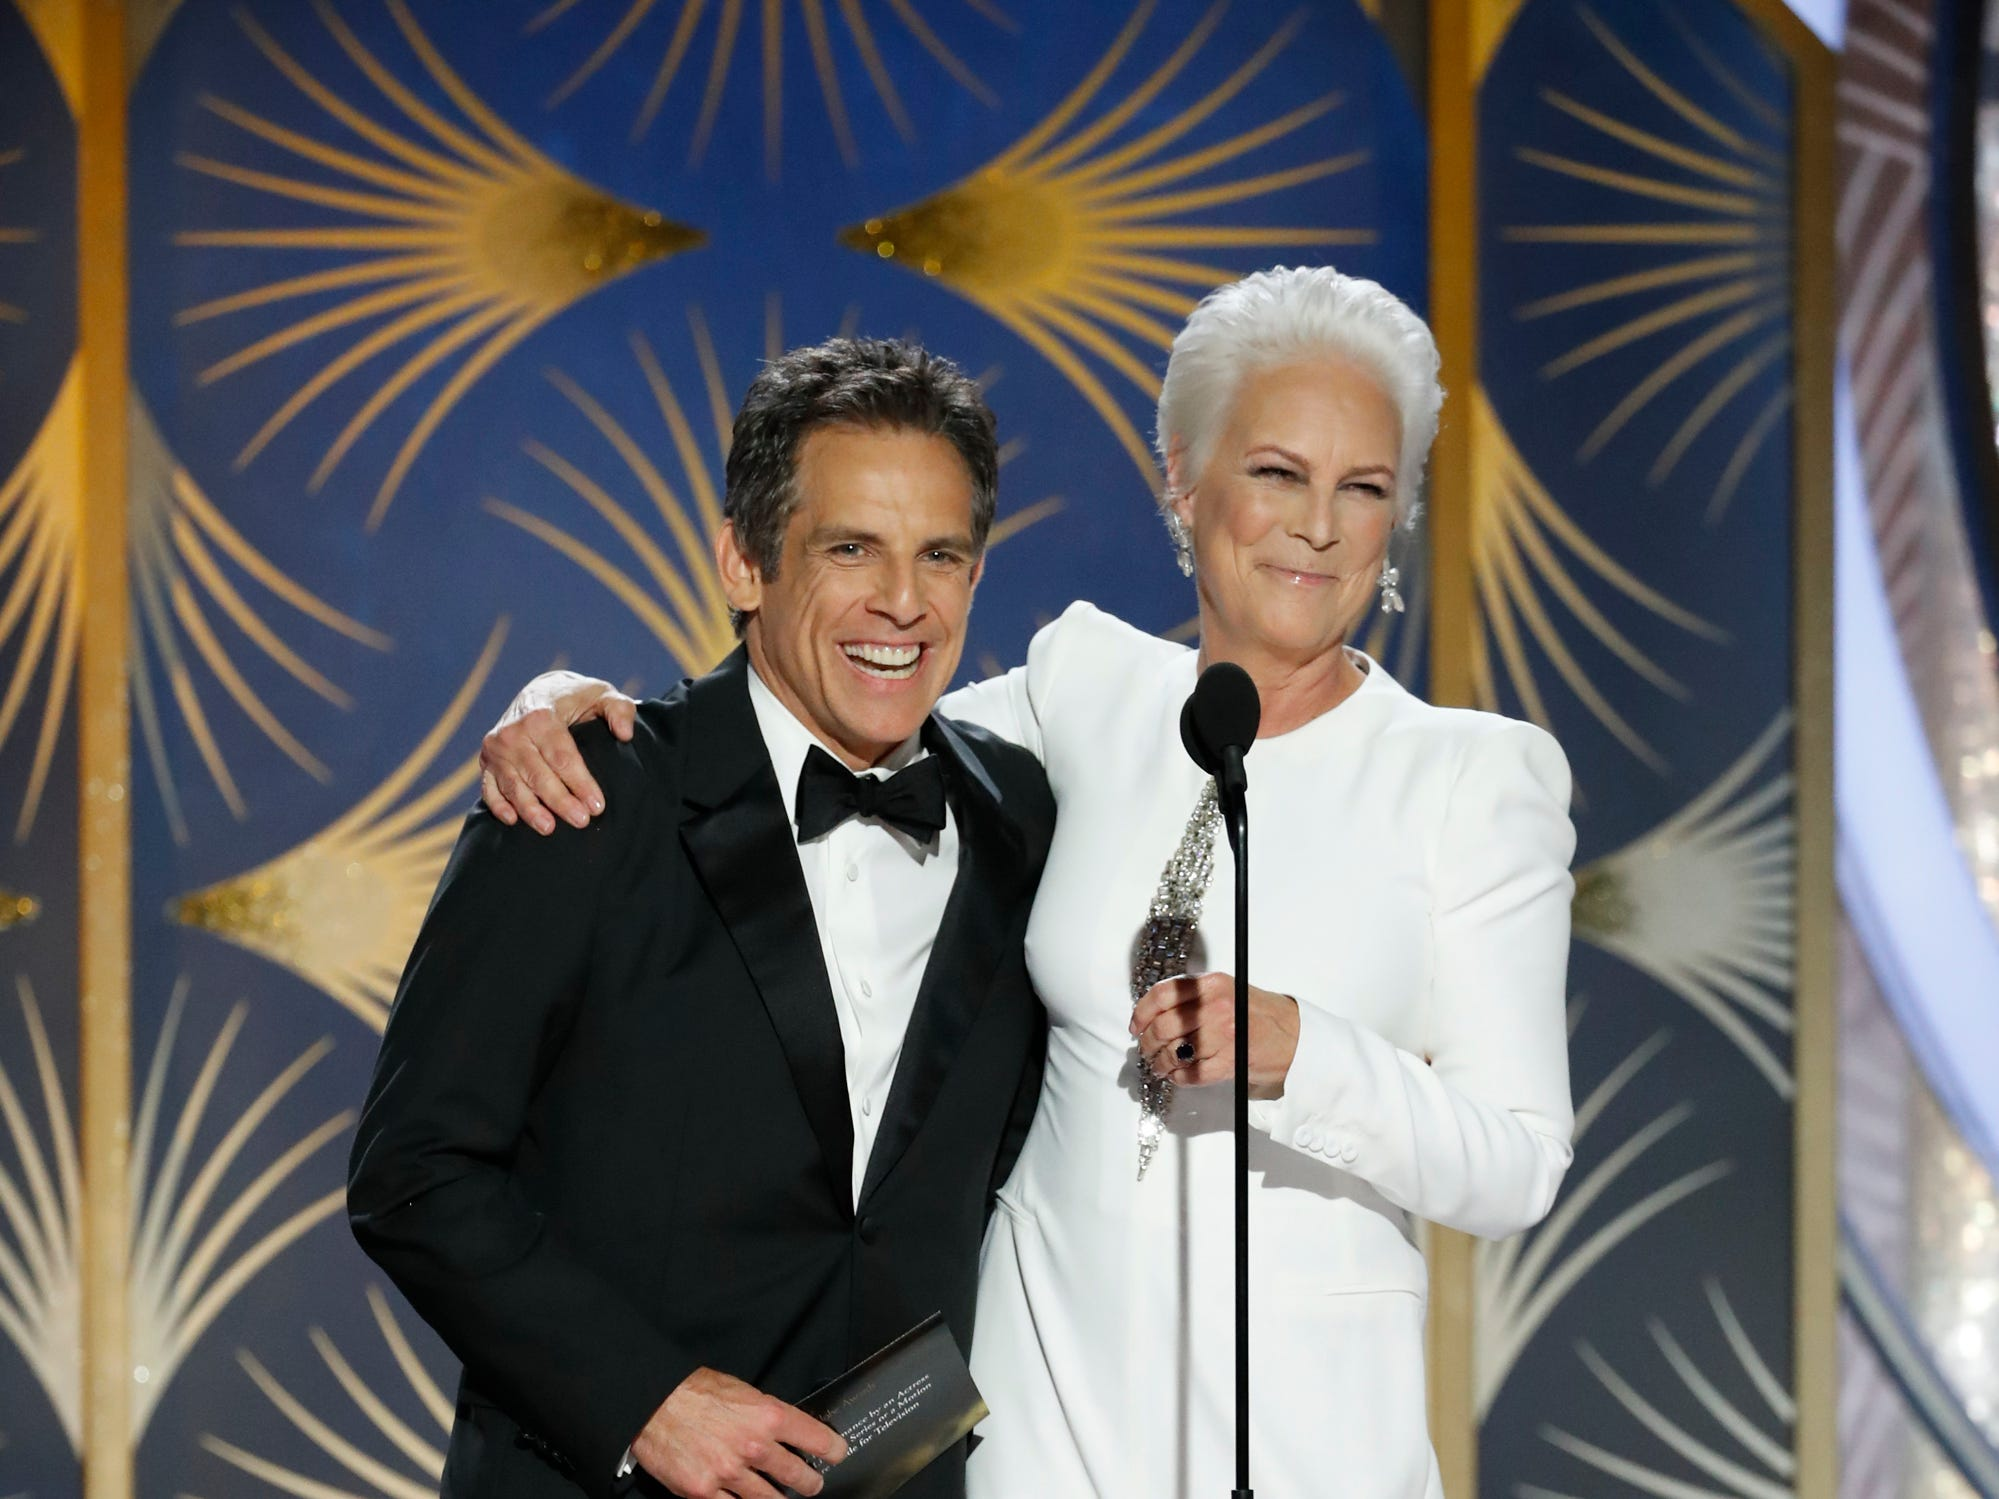 This image released by NBC shows presenters Ben Stiller, left, and Jamie Lee Curtis during the 76th Annual Golden Globe Awards at the Beverly Hilton Hotel.